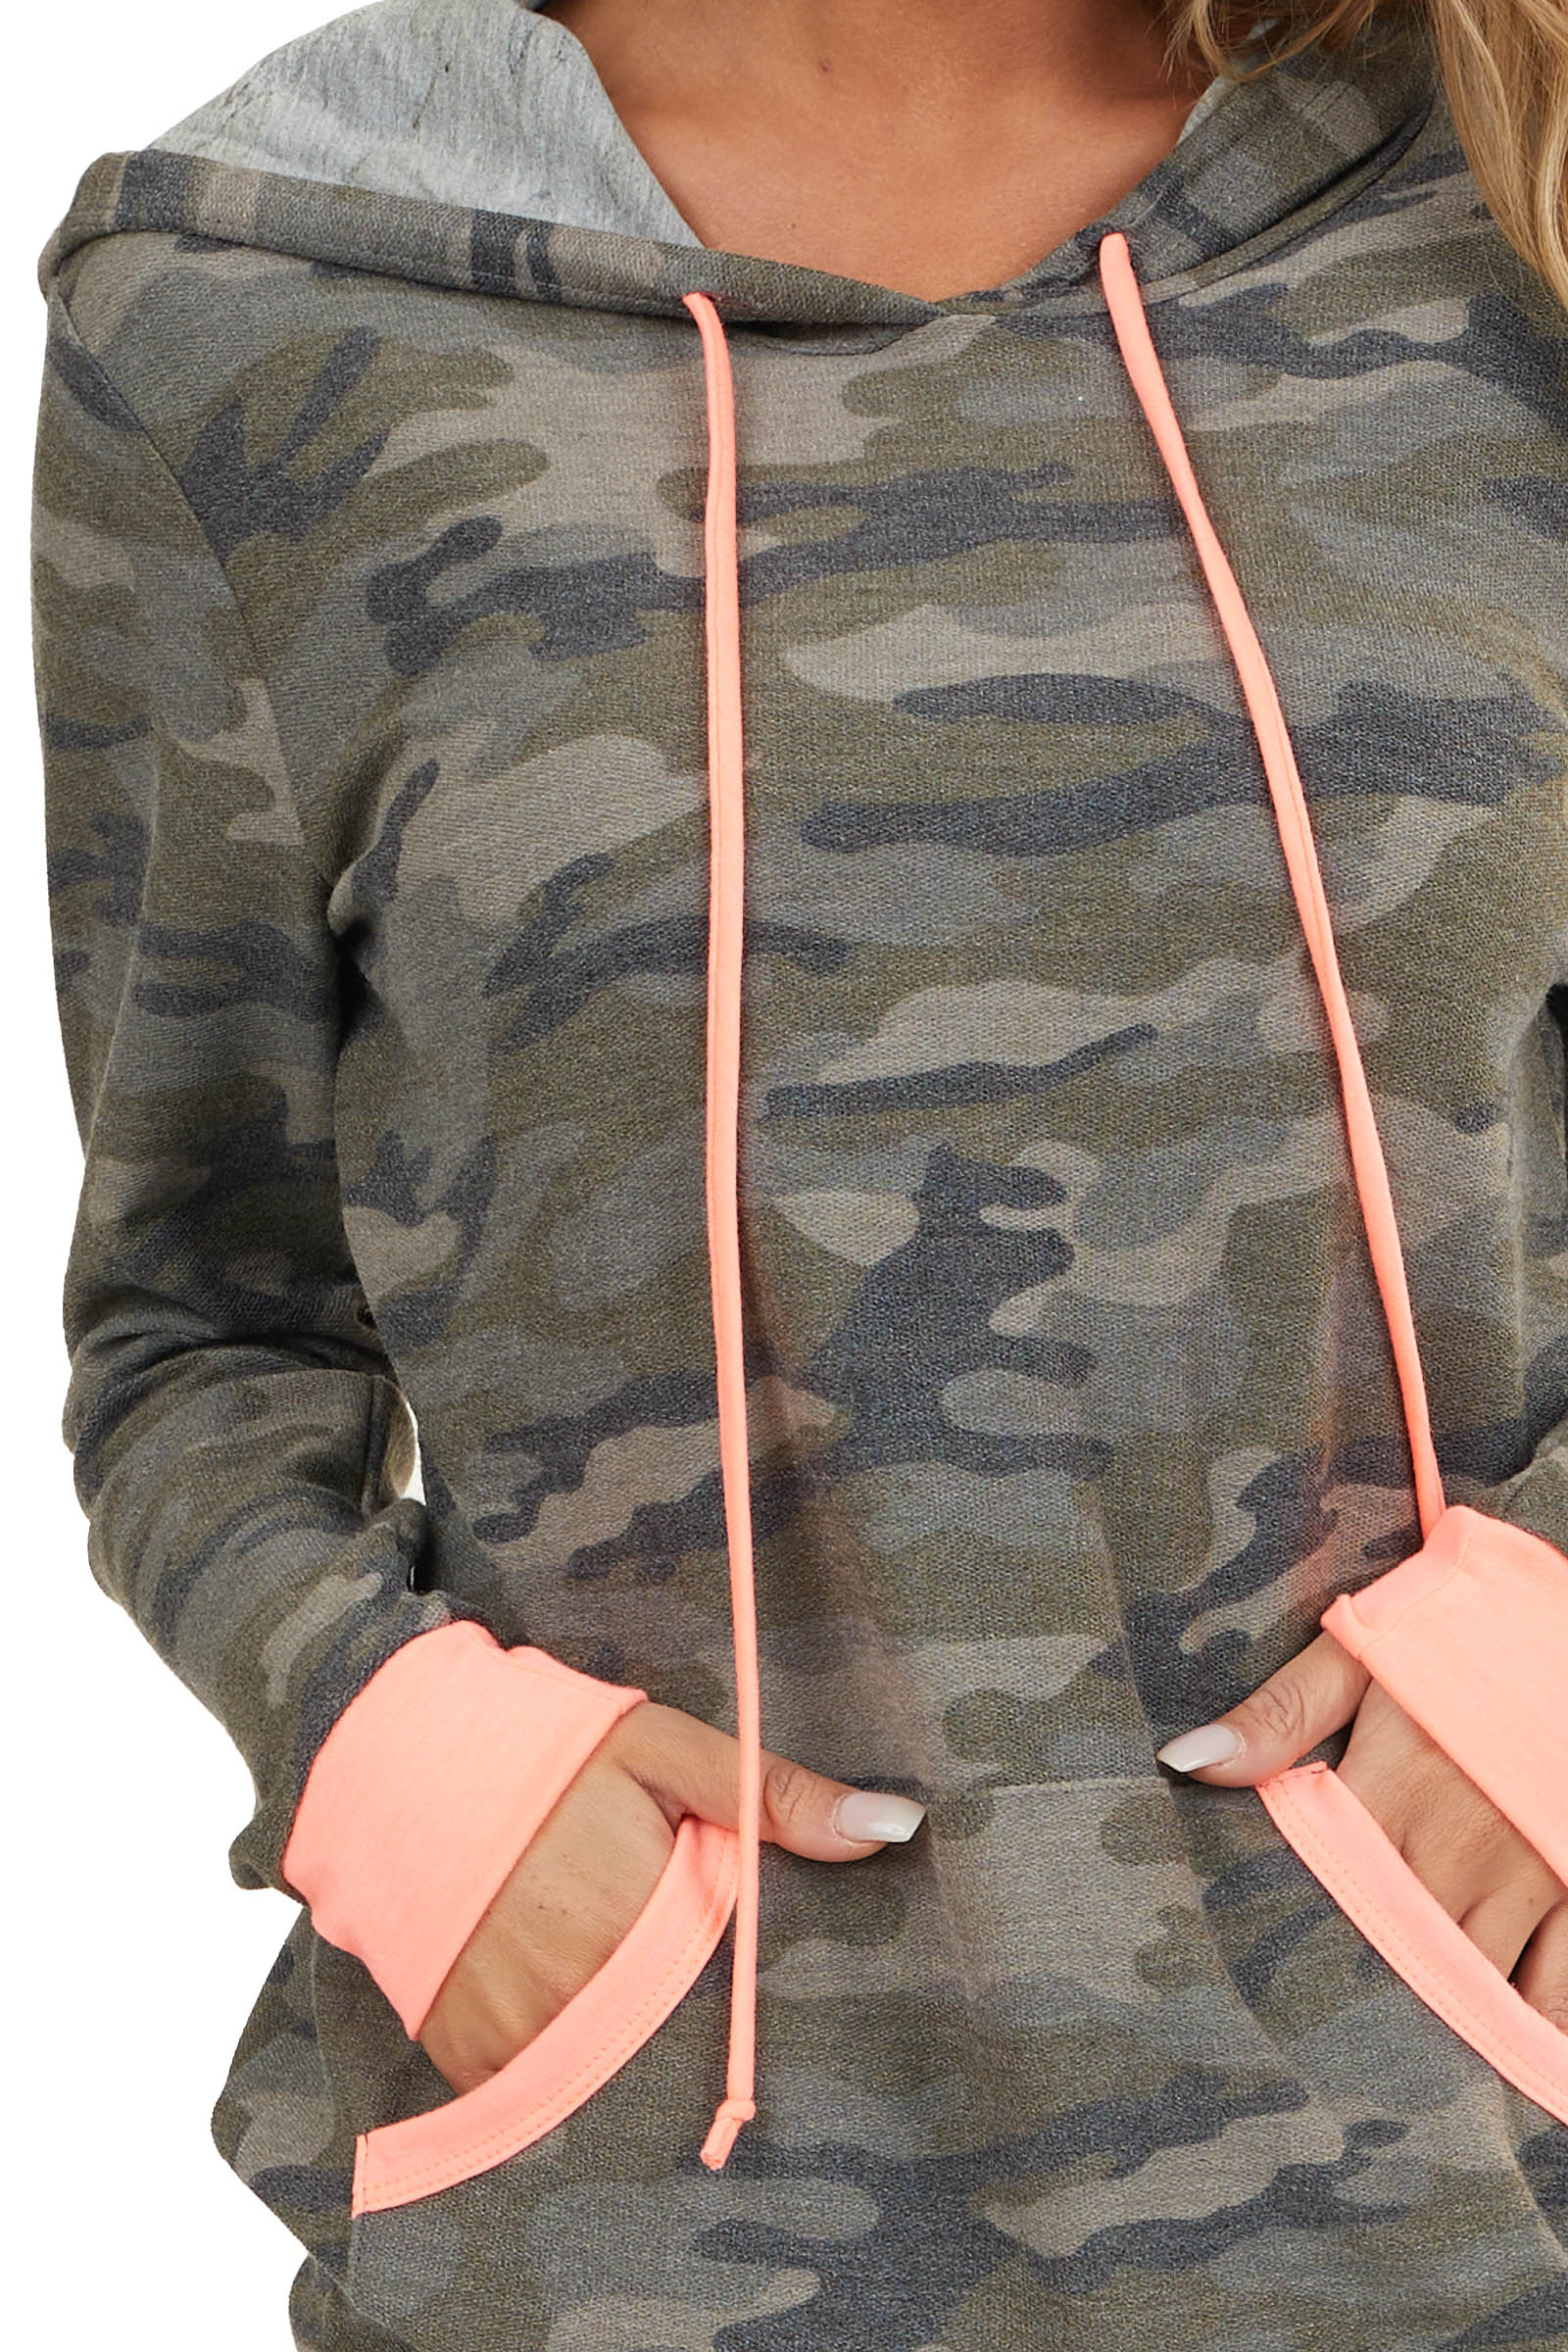 Hunter Green Camo Pullover Hoodie with Bright Coral Details